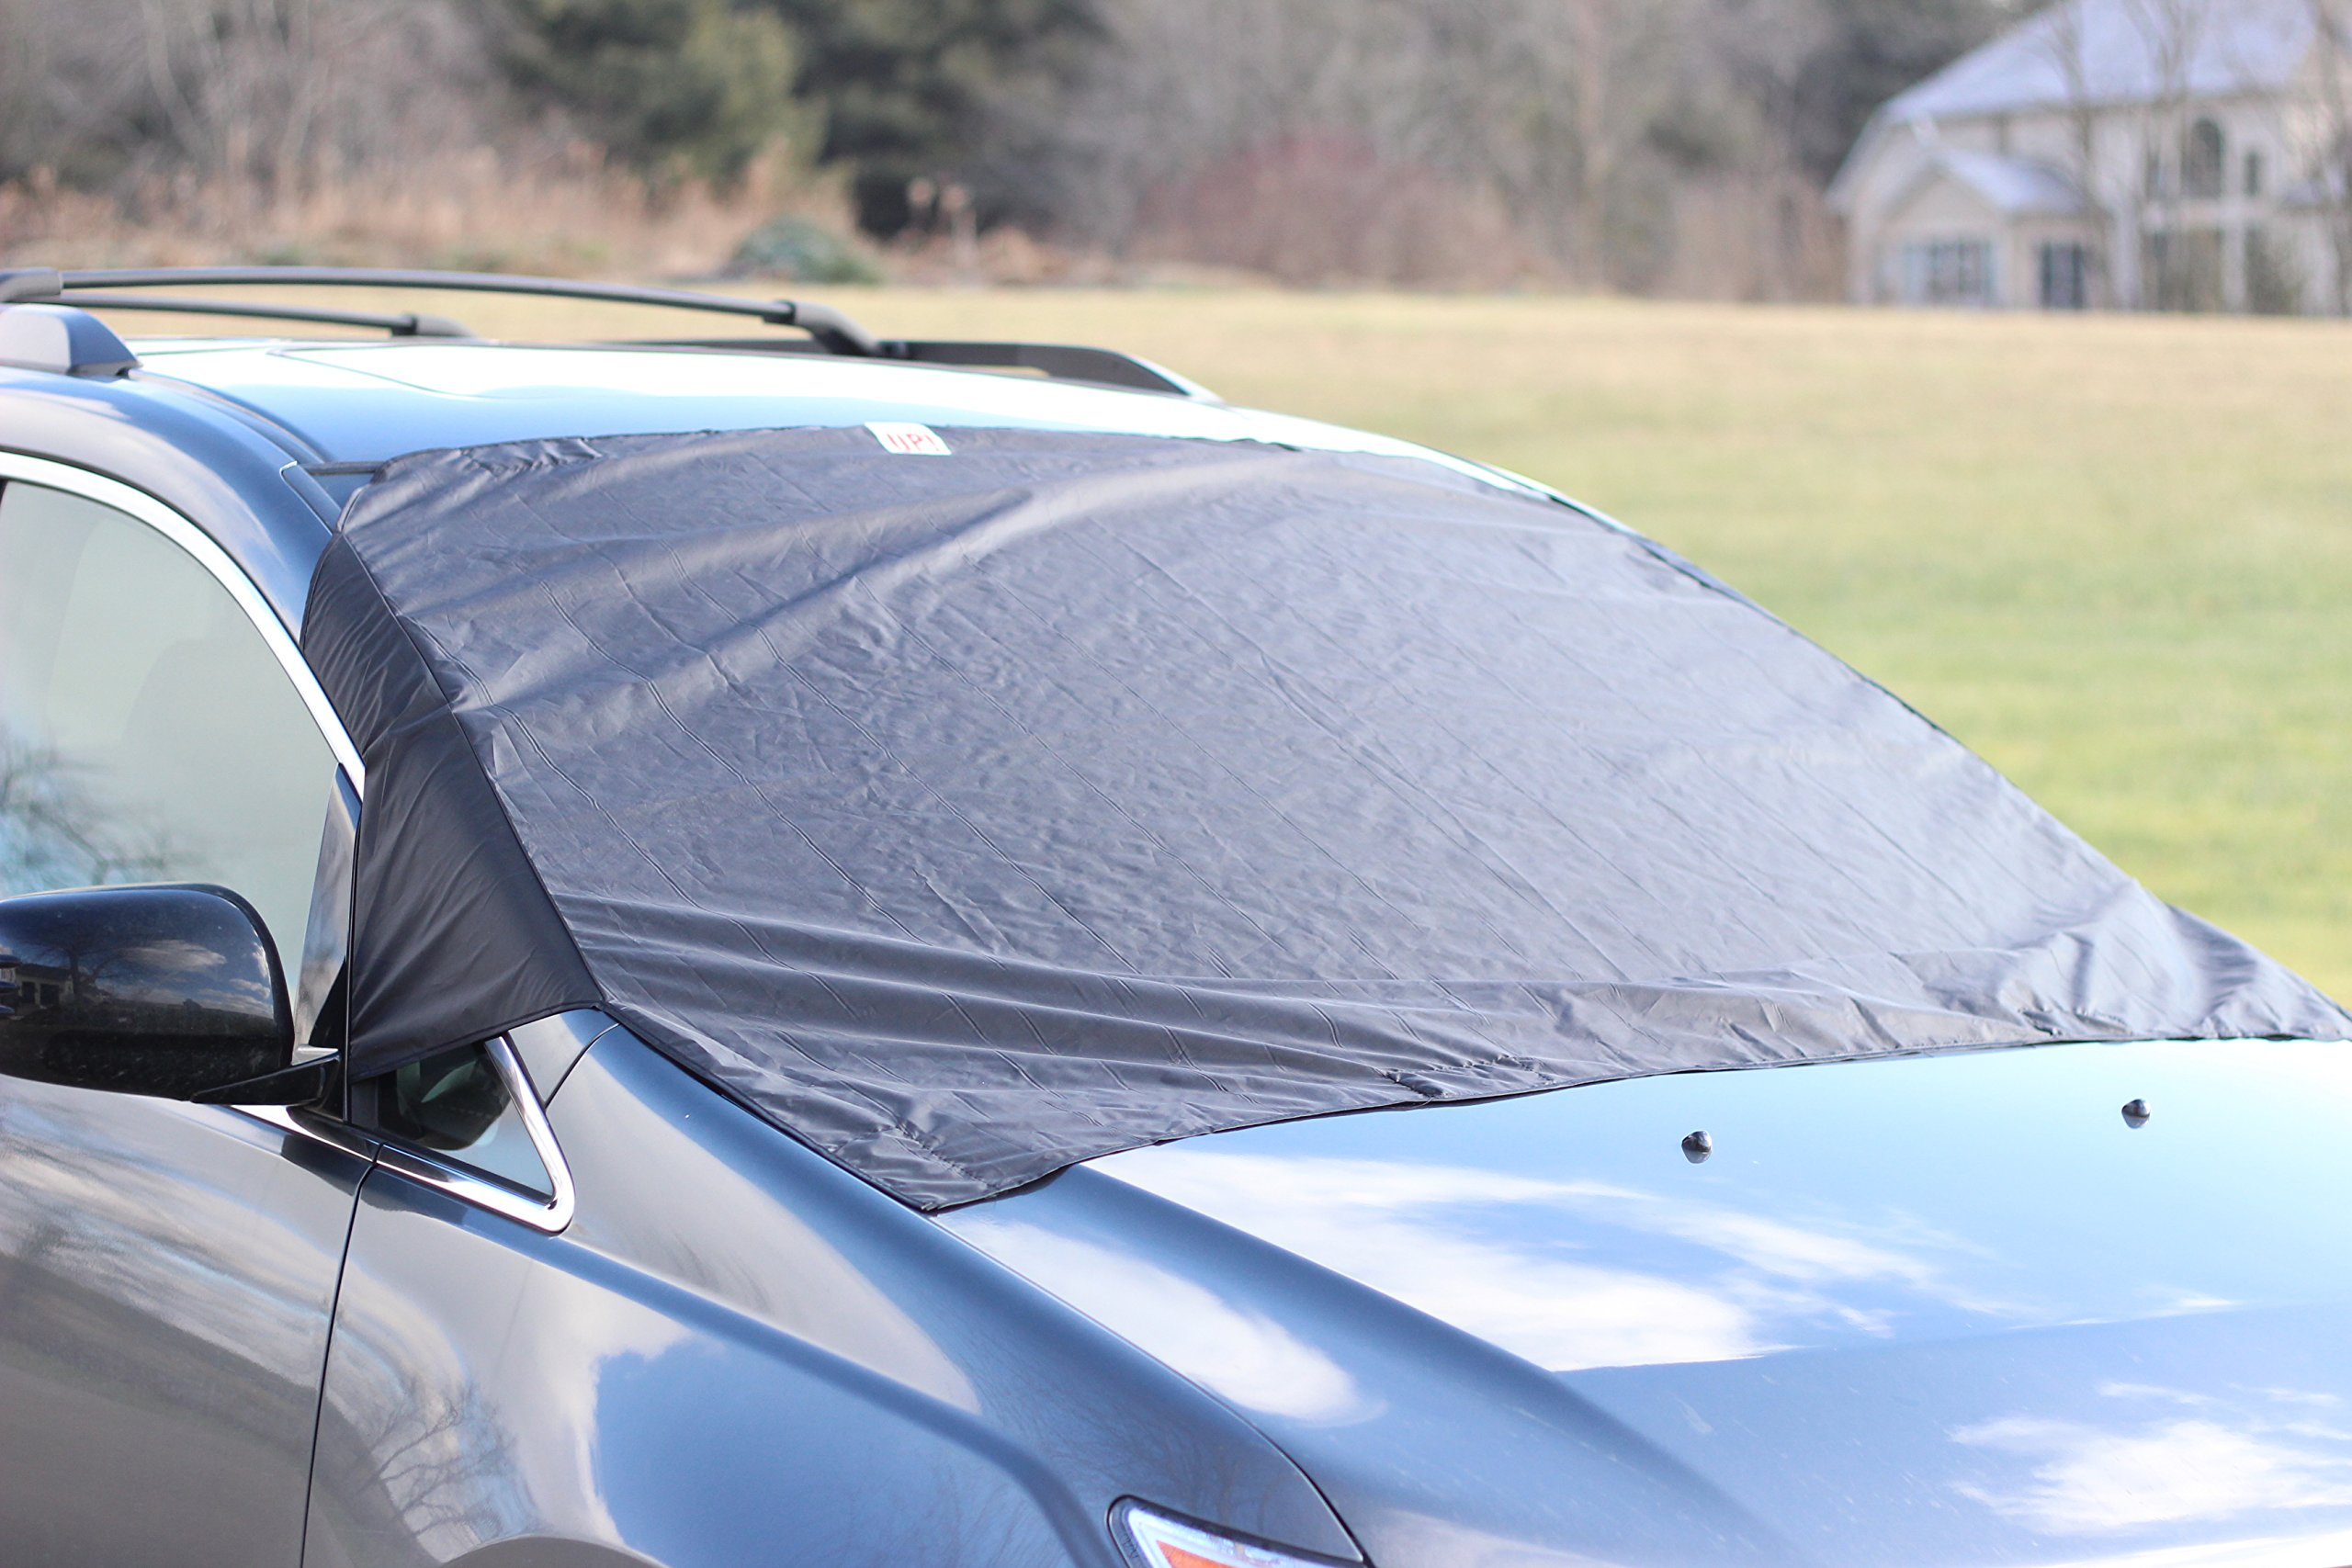 Get Quotations · Premium Windshield Snow Cover U2013 Sizes For ALL Vehicles    Covers Wipers   Snow, Ice